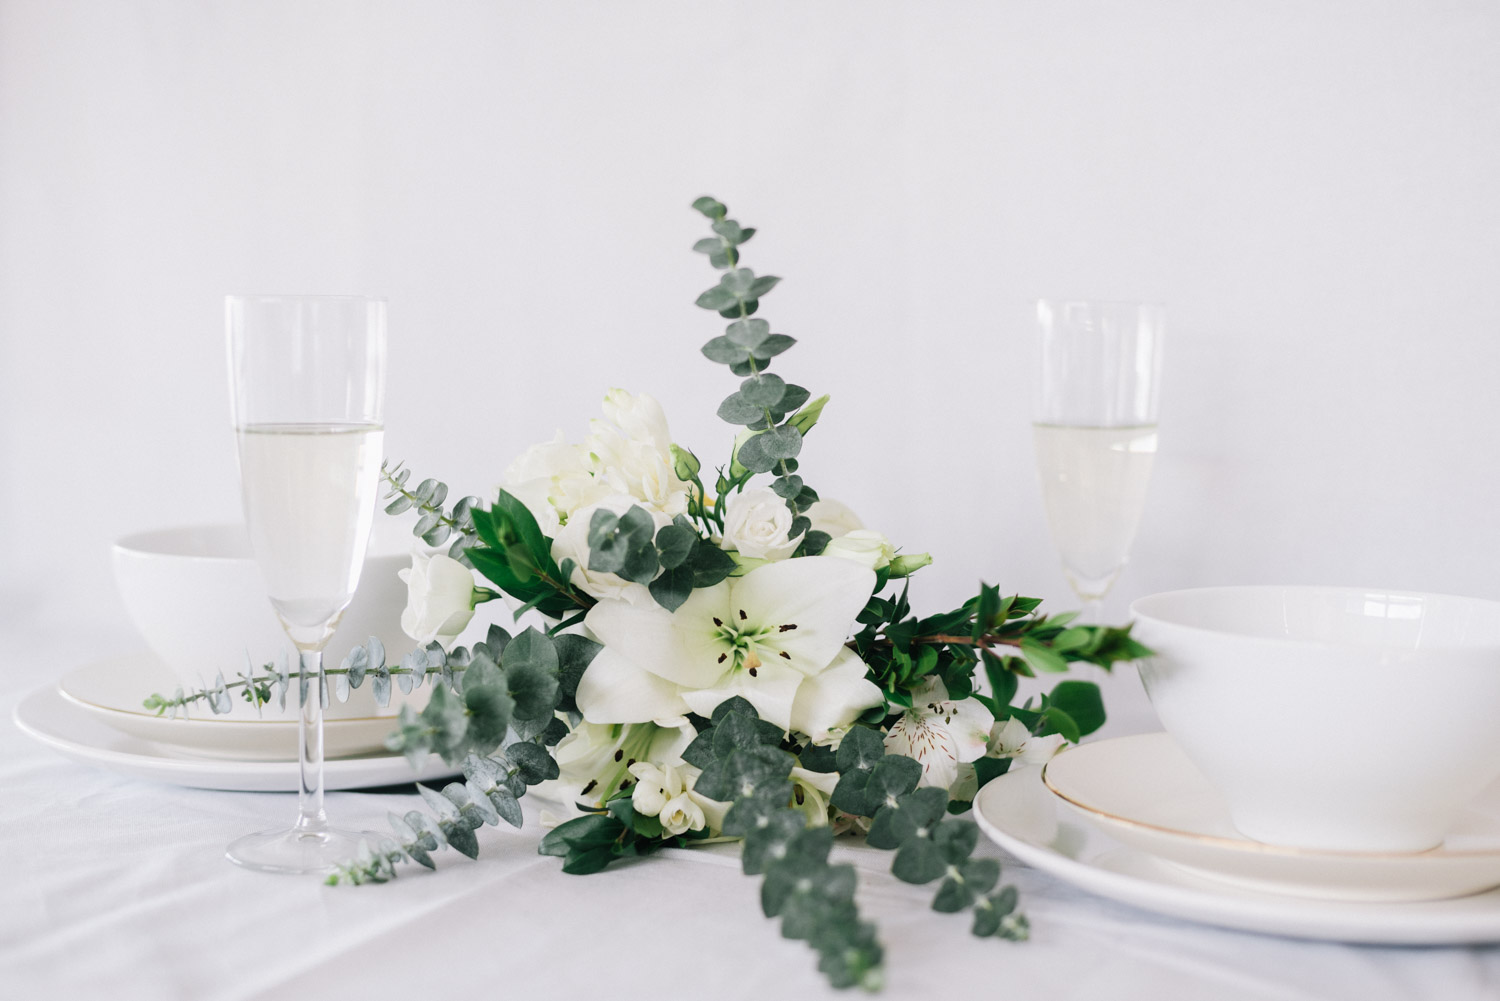 Janet Kwan Lifestyle Interior Photographer How To Make The Most Of A Flower Arrangement